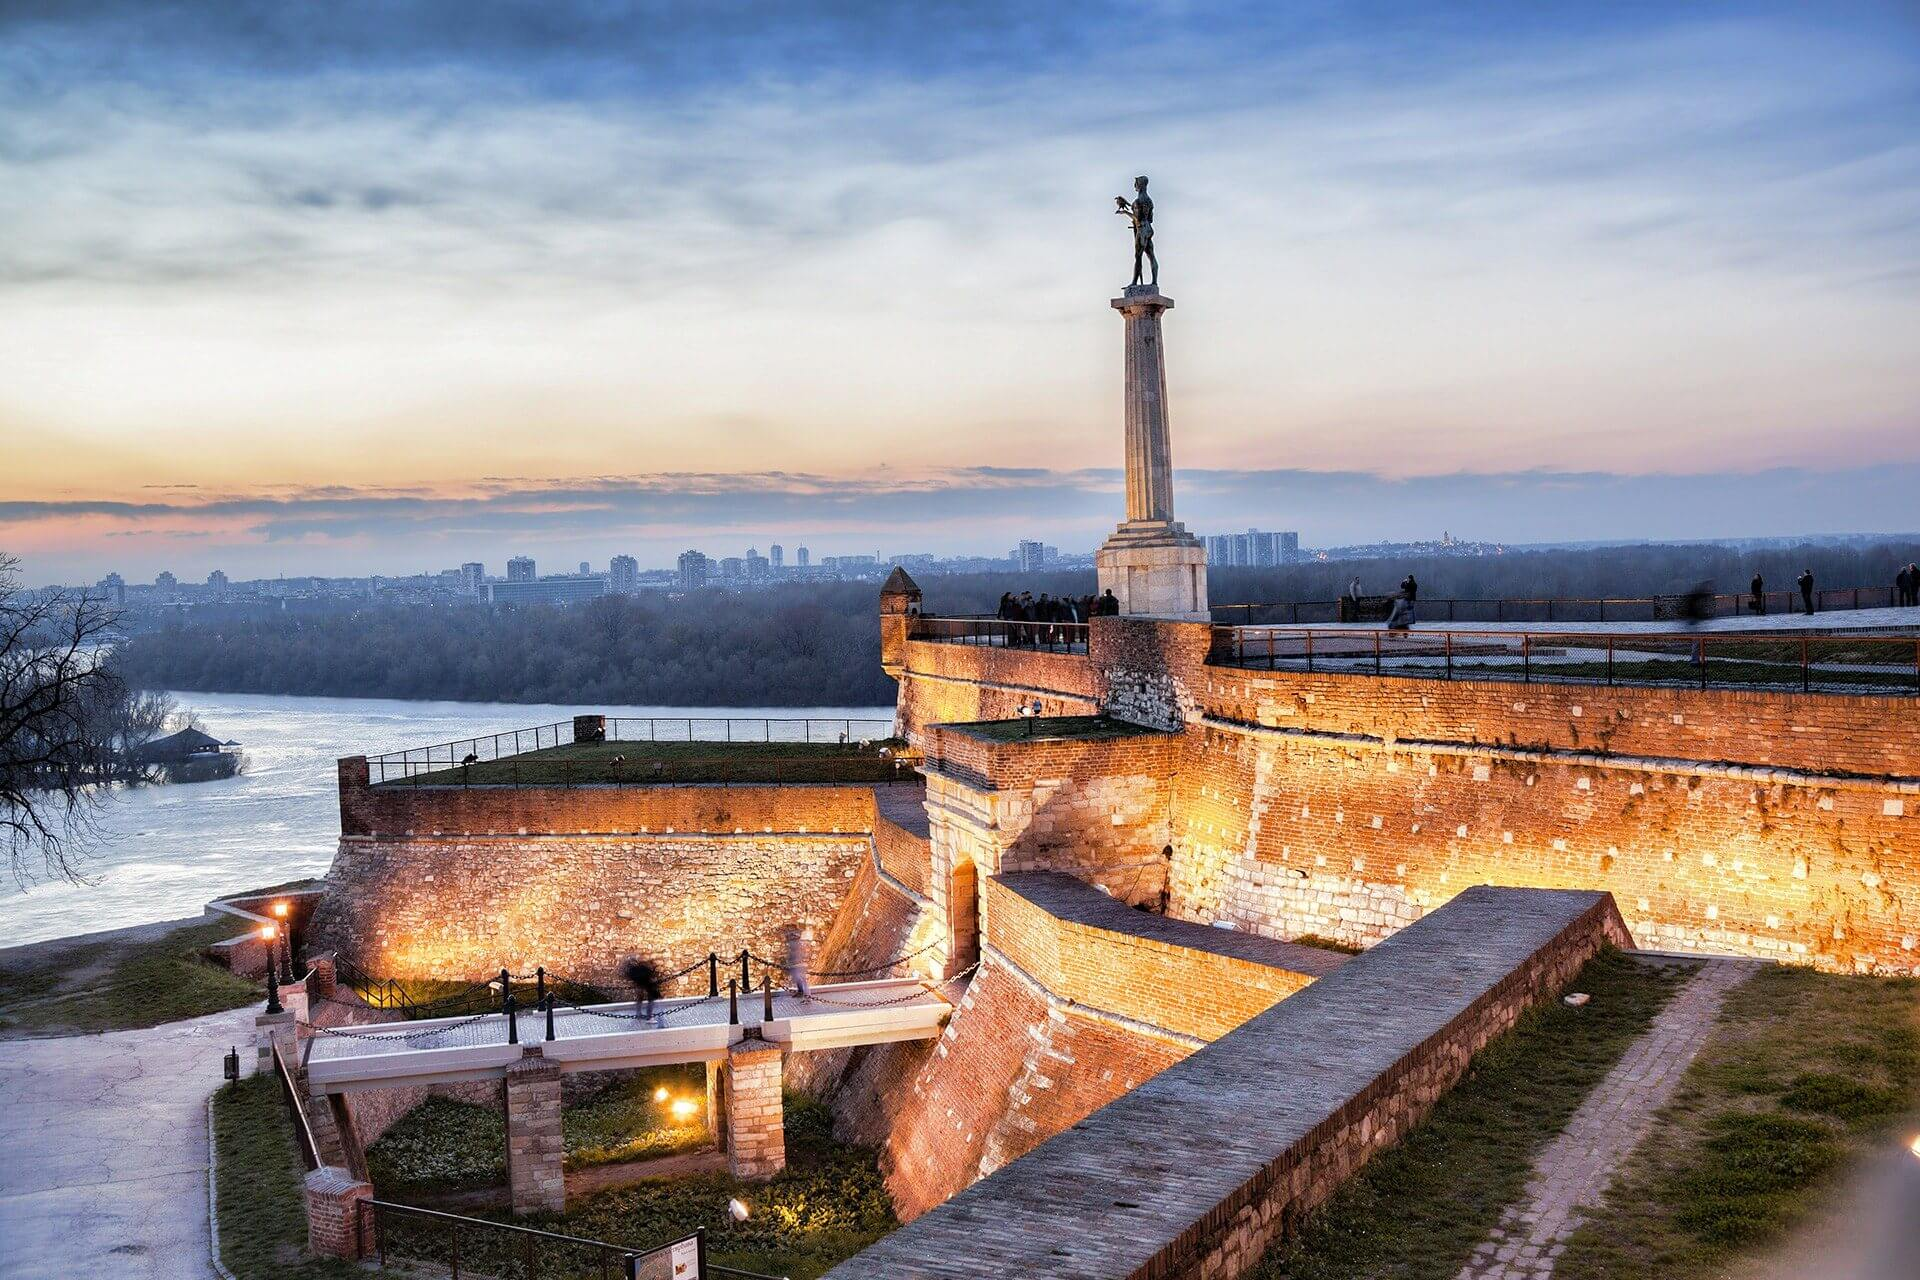 Dorćol - the oldest part of Belgrade